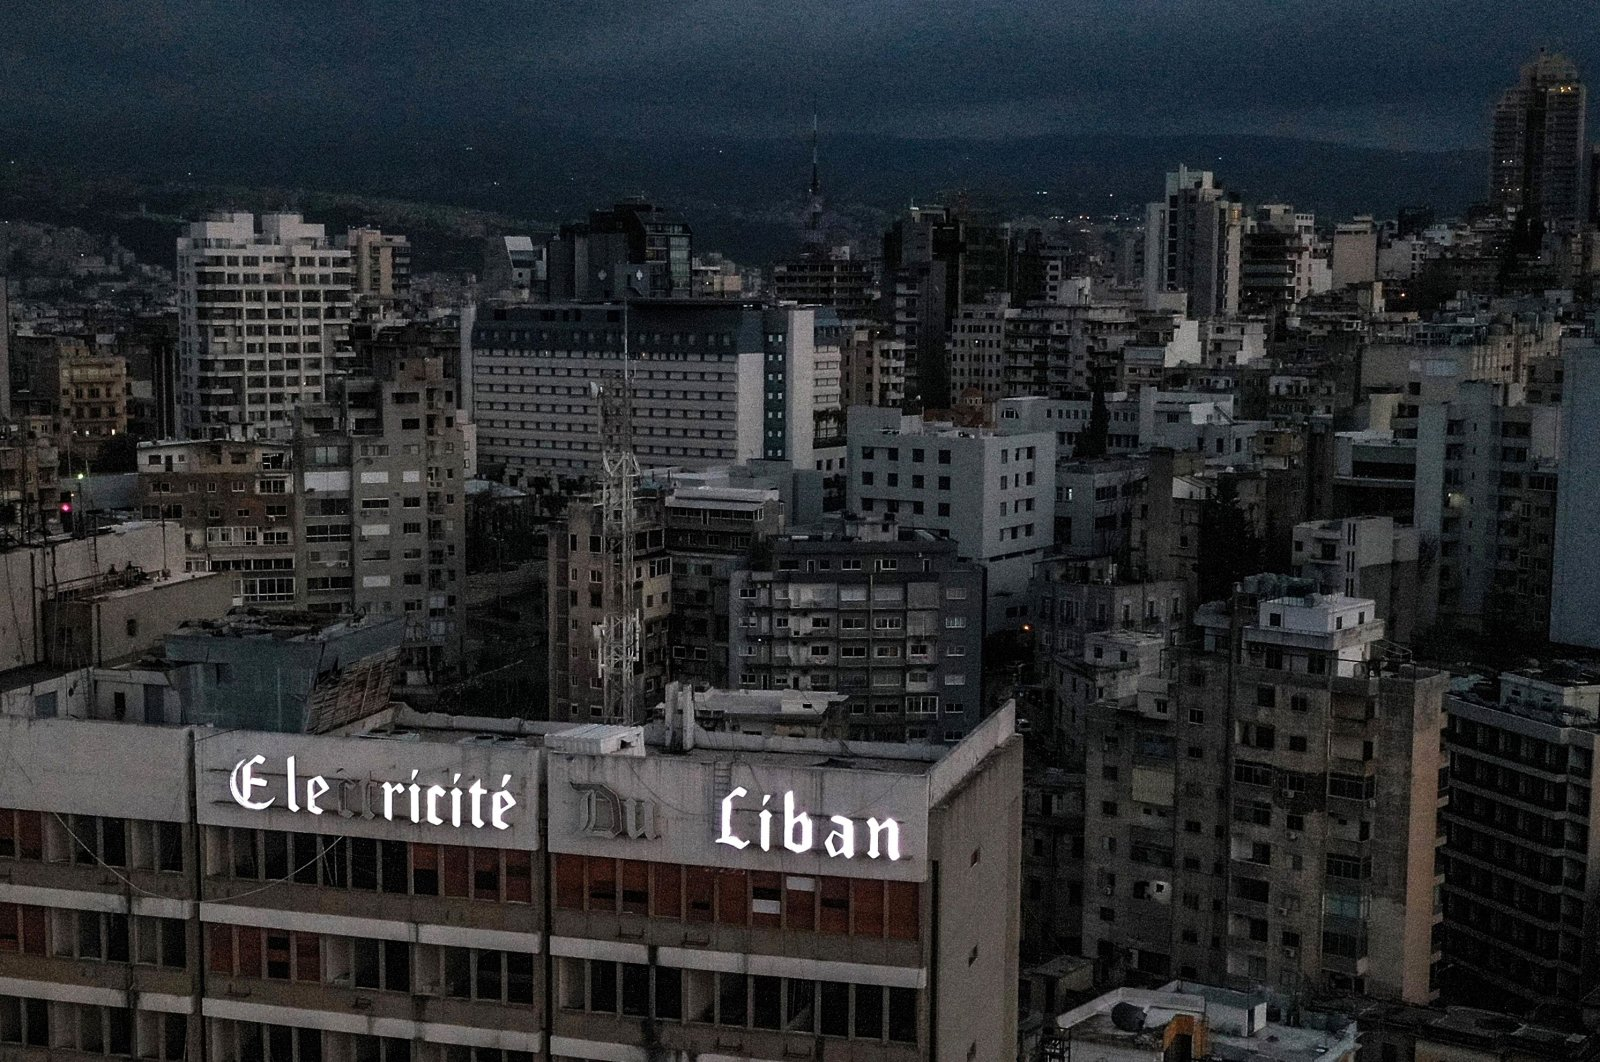 An aerial view of Beirut during a power outage, with the Electricite du Liban (Electricity Of Lebanon) company headquarters in the foreground, Beirut, Lebanon, April 3, 2021. (AFP Photo)